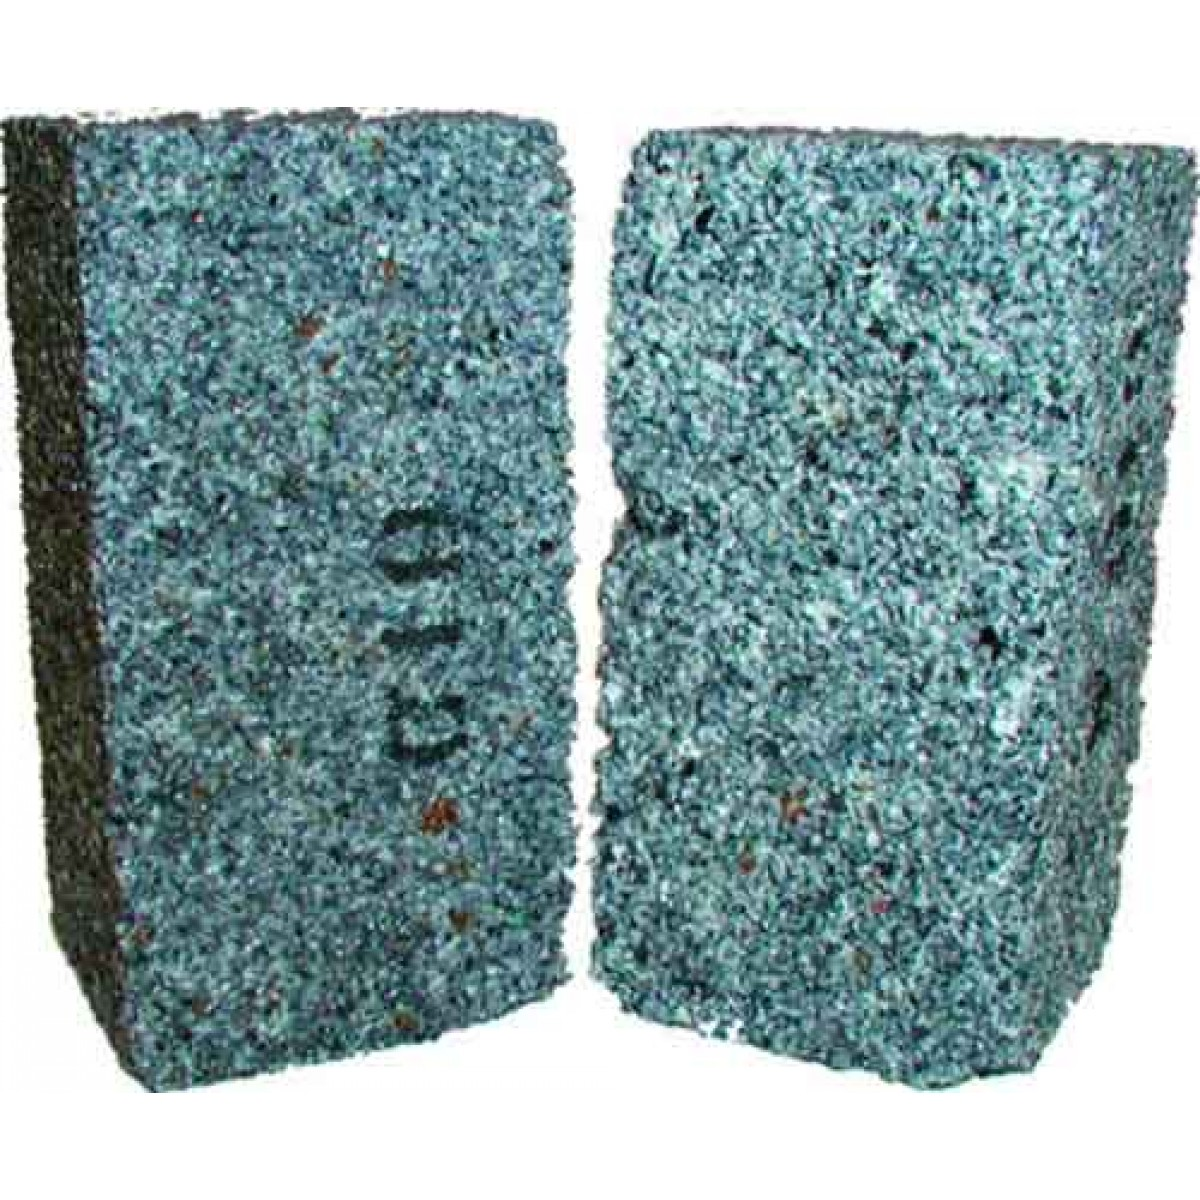 how to use a grinding stone